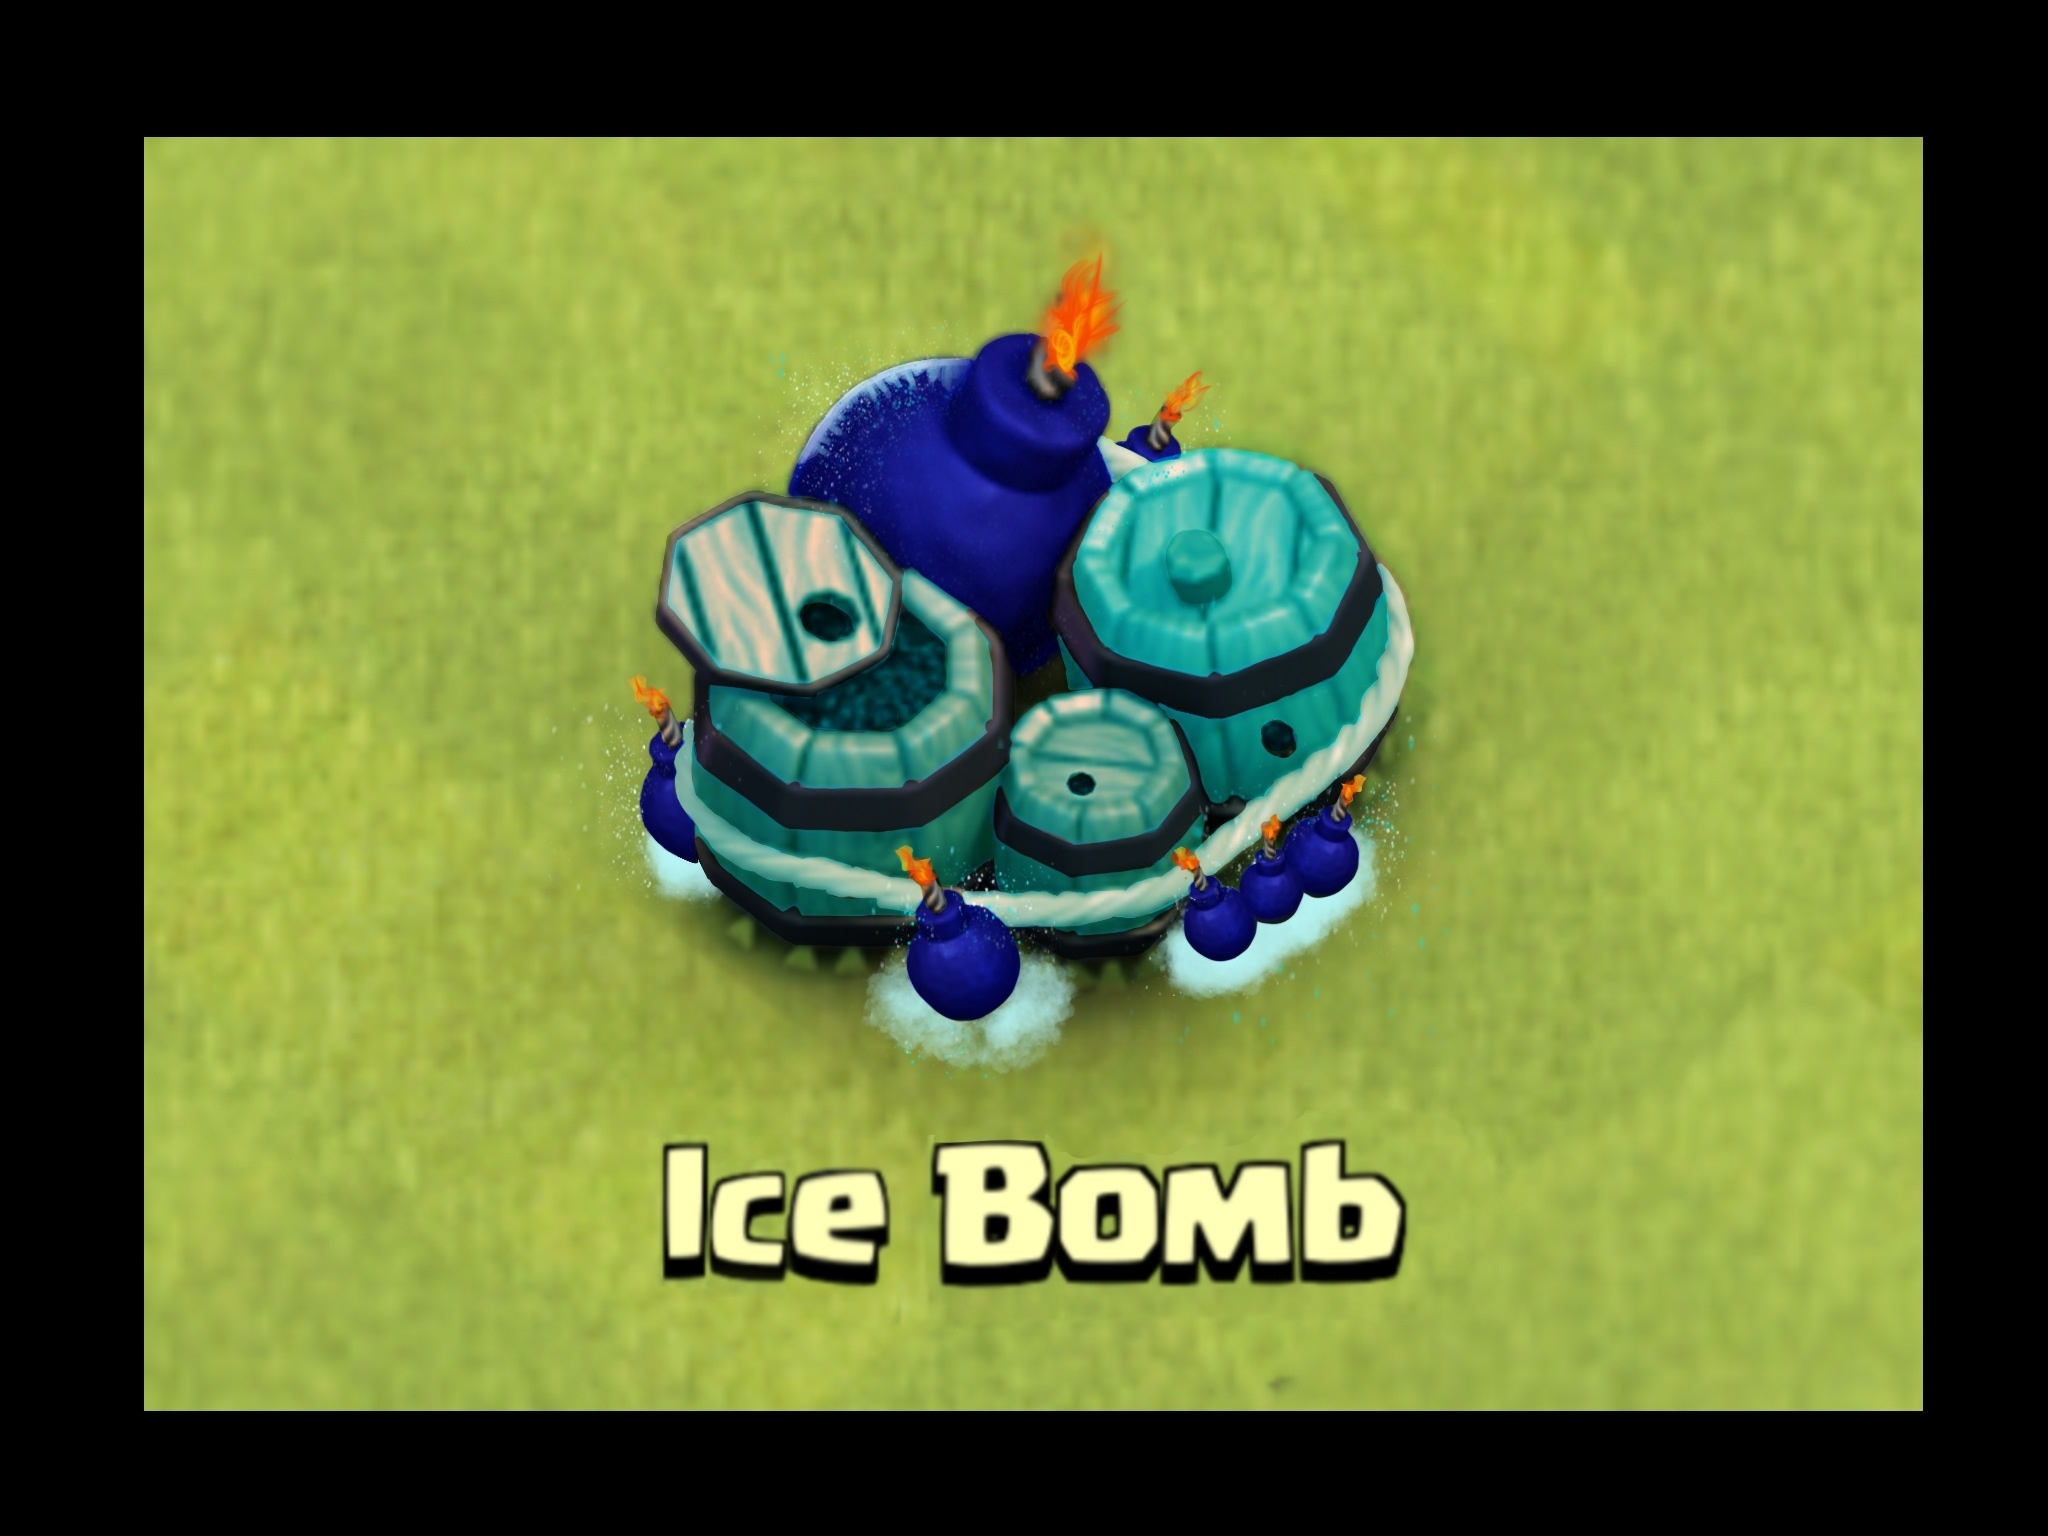 Clash Of Clans Air Bomb Viewing Gallery